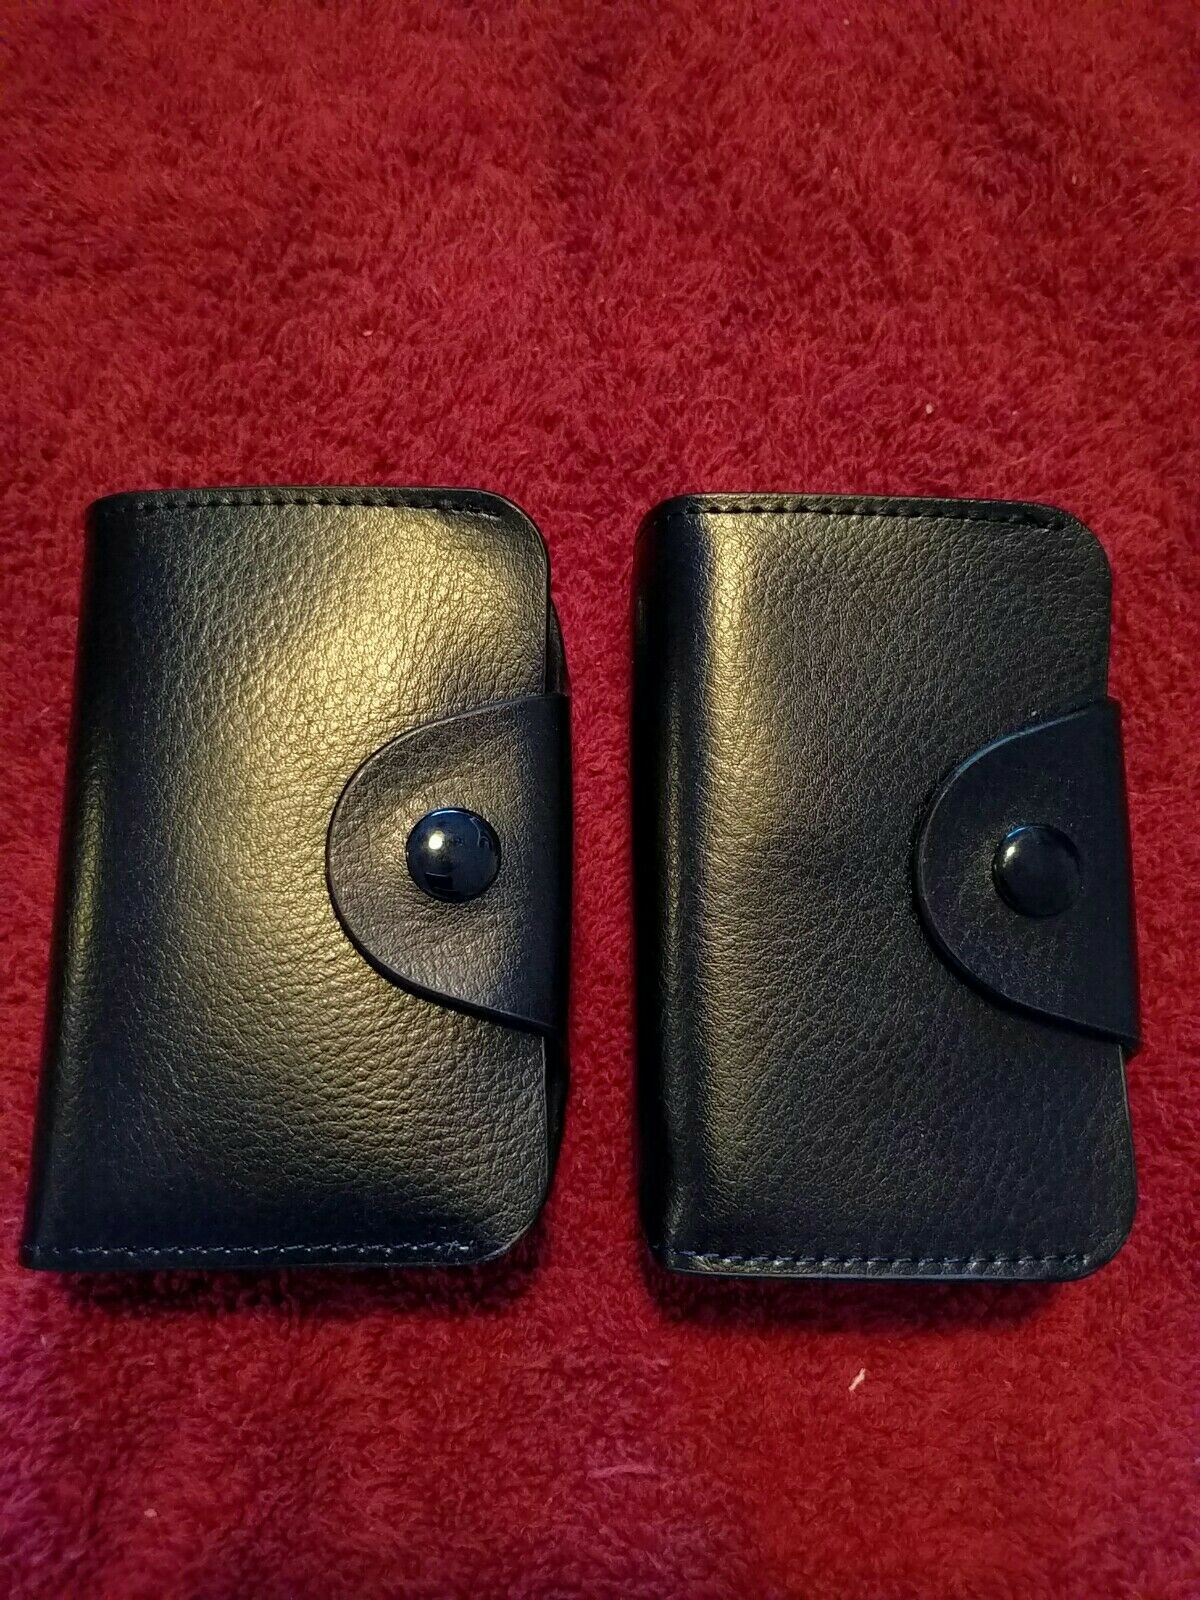 Reseller lot, 180, Black multi-card holder, soft, faux leather, button up, New